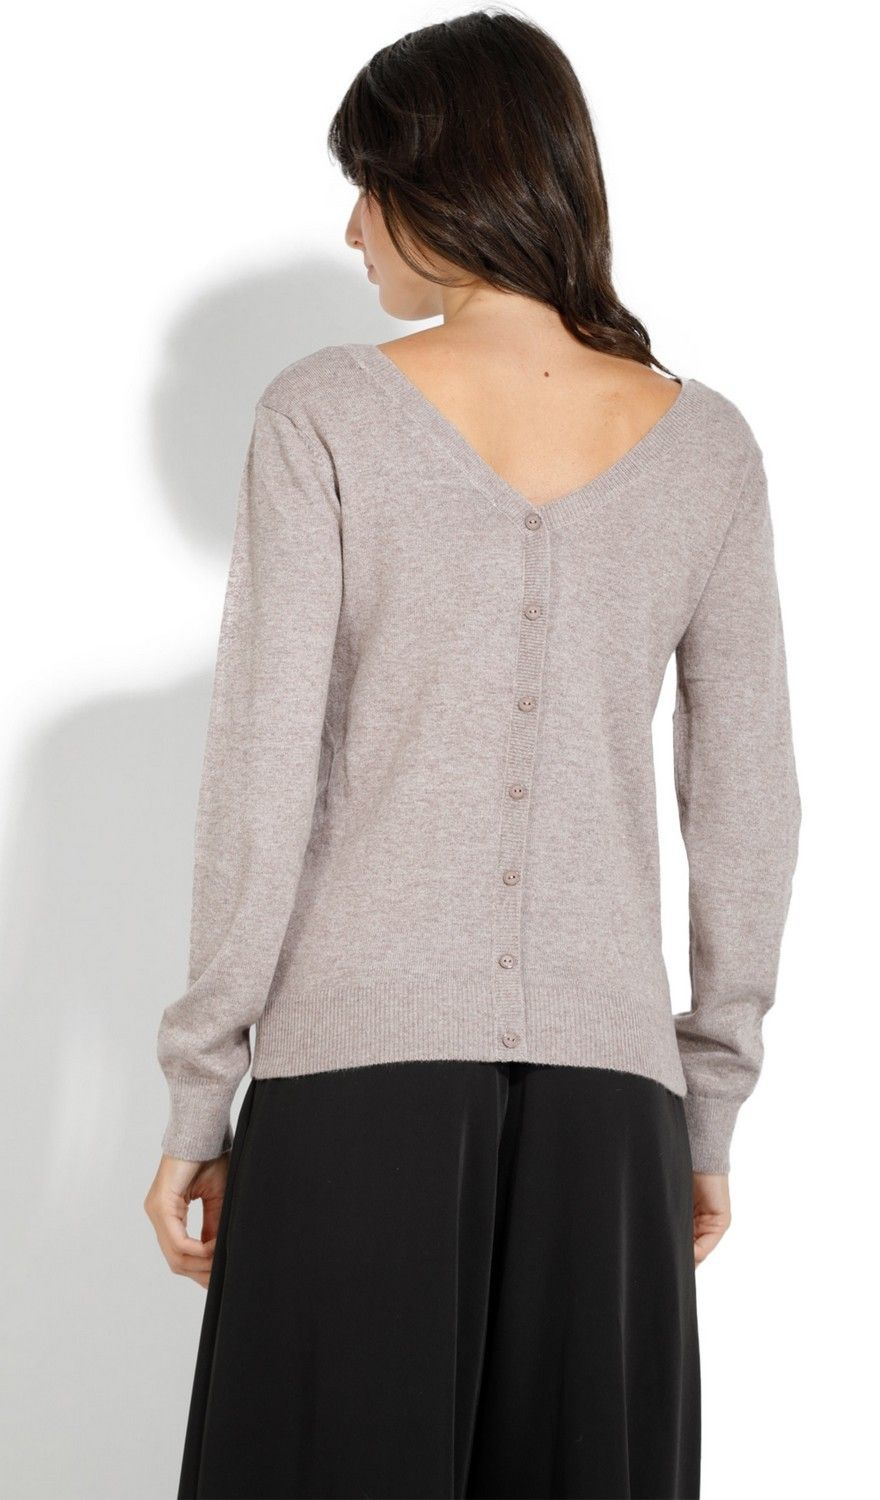 Assuili Boat Neck Buttoned Back Sweater in Beige